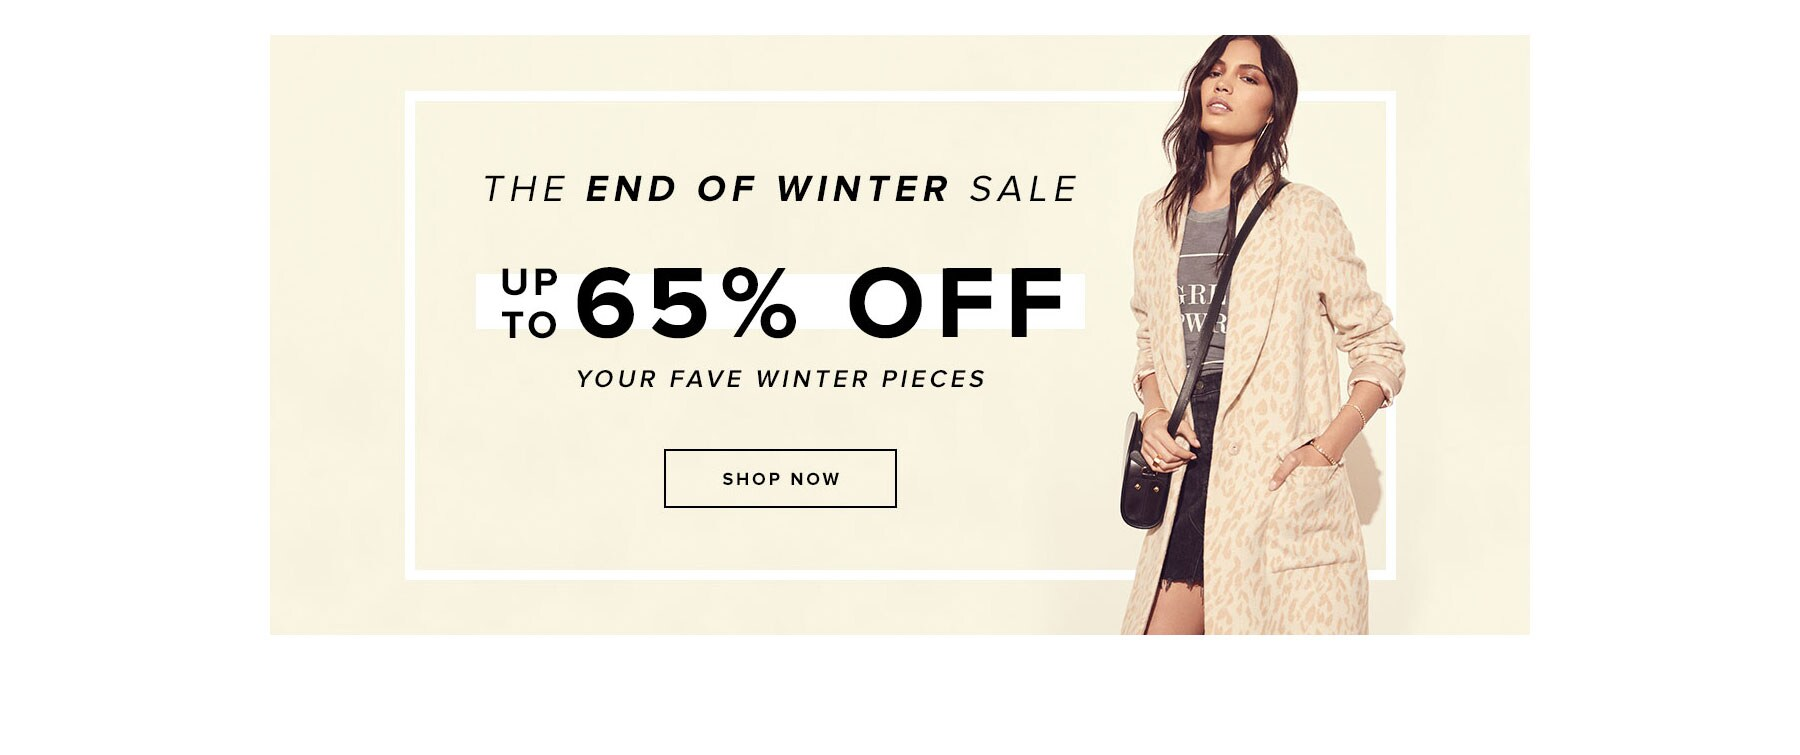 The End of Winter Sale. Up to 65% Off. Your face winter pieces.Shop Now.